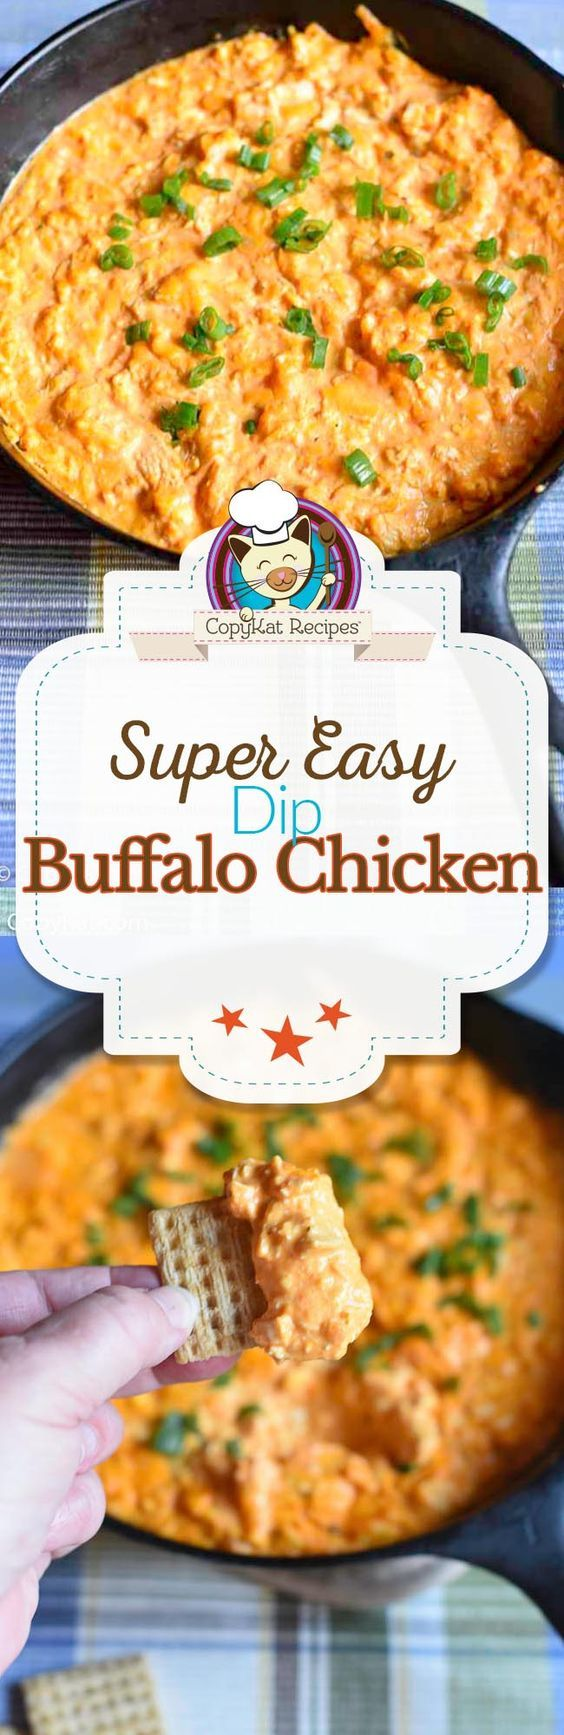 Make delicious buffalo chicken dip for your next game night or party.